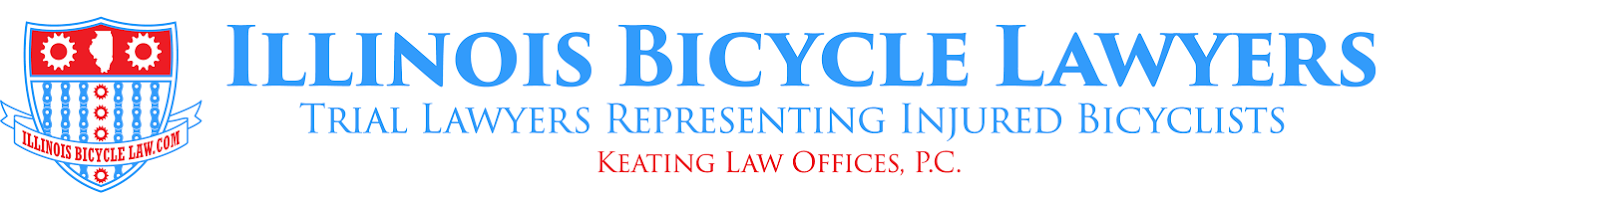 Chicago Bicycle Accident Lawyer | Keating Law Offices the Illinois Bicycle Lawyers